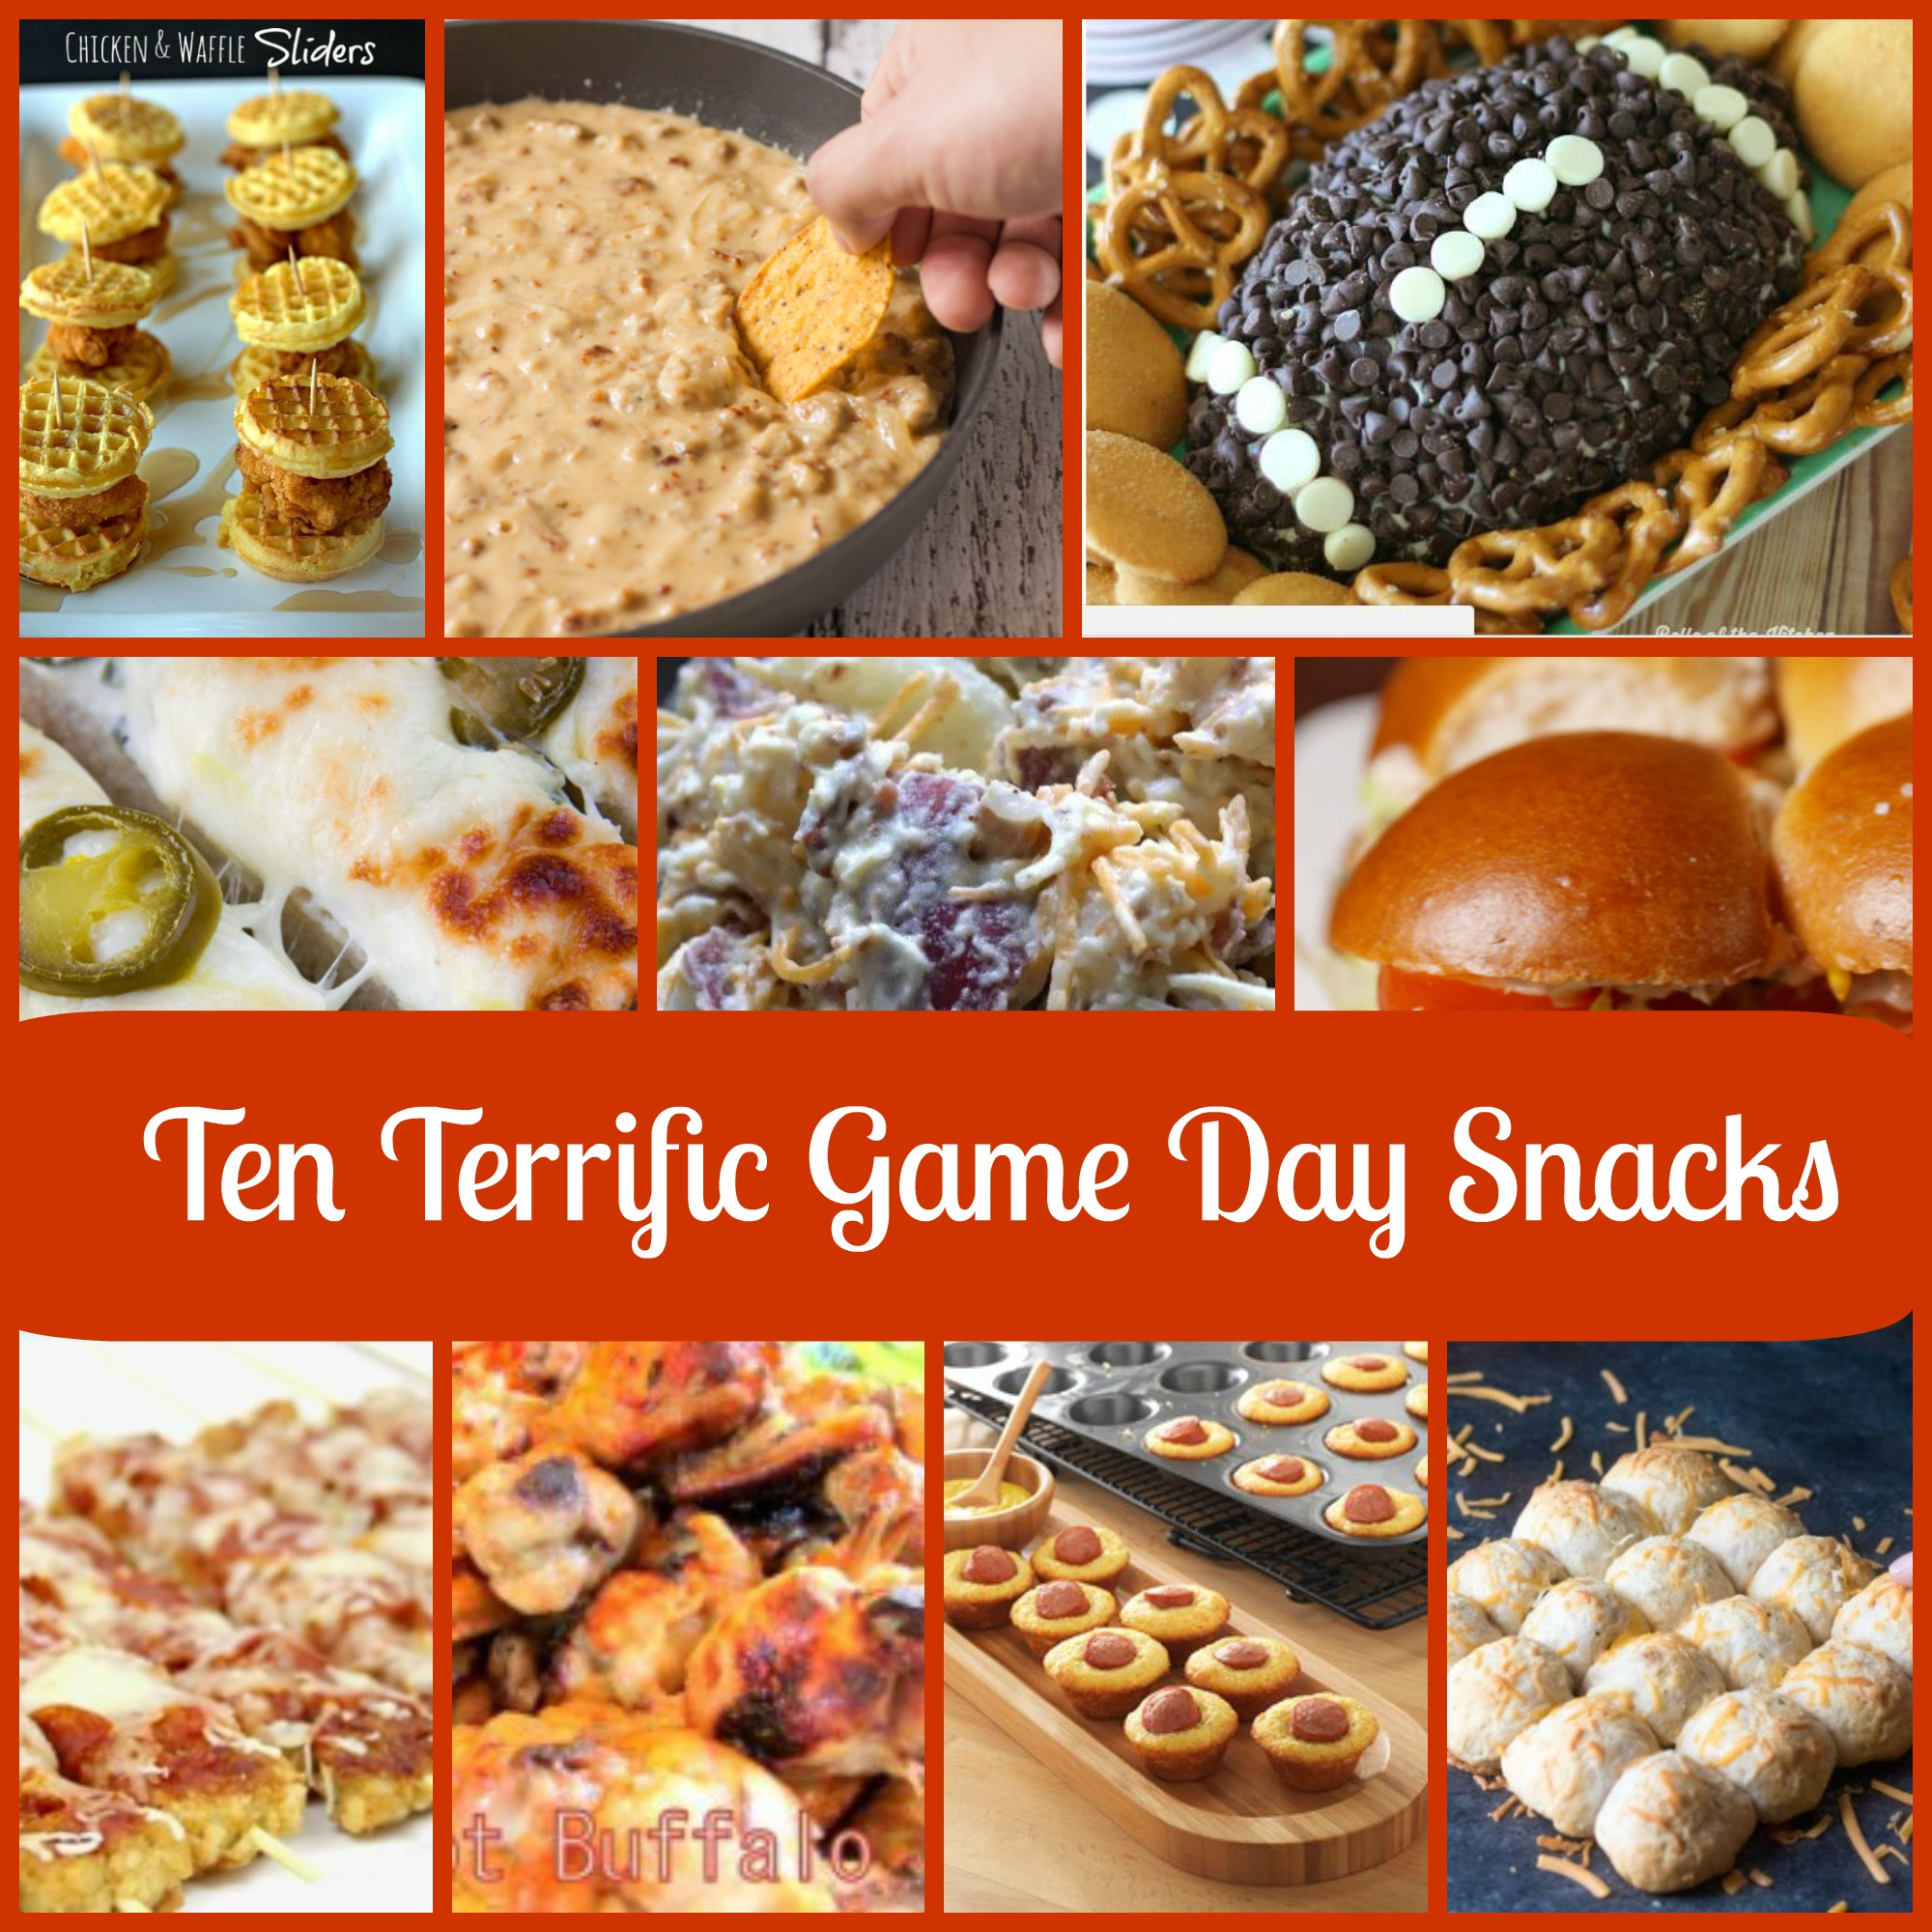 Try these 10 Terrific and Easy Game Day Snack Recipes!!